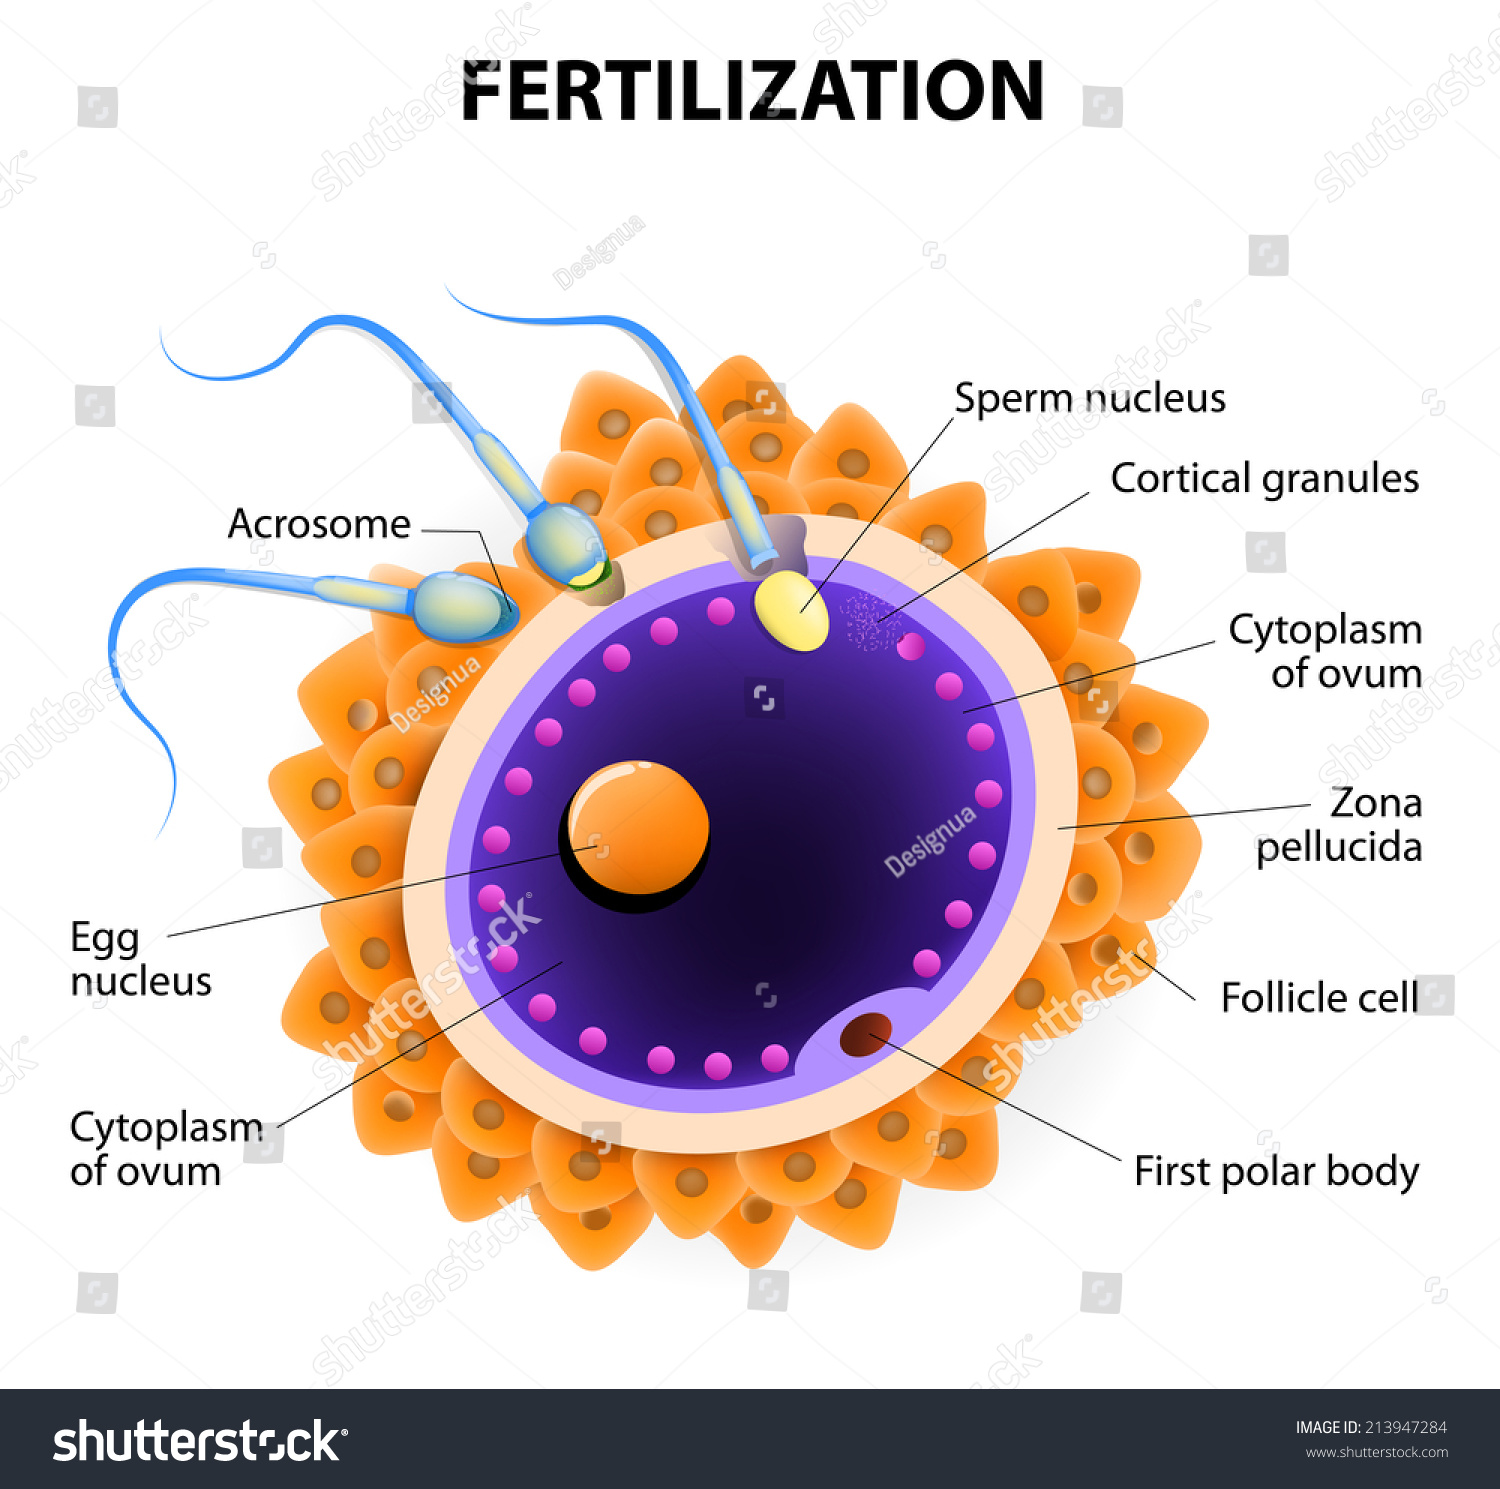 Fertilization Union Ovum Spermatozoon When Sperm Stock ...